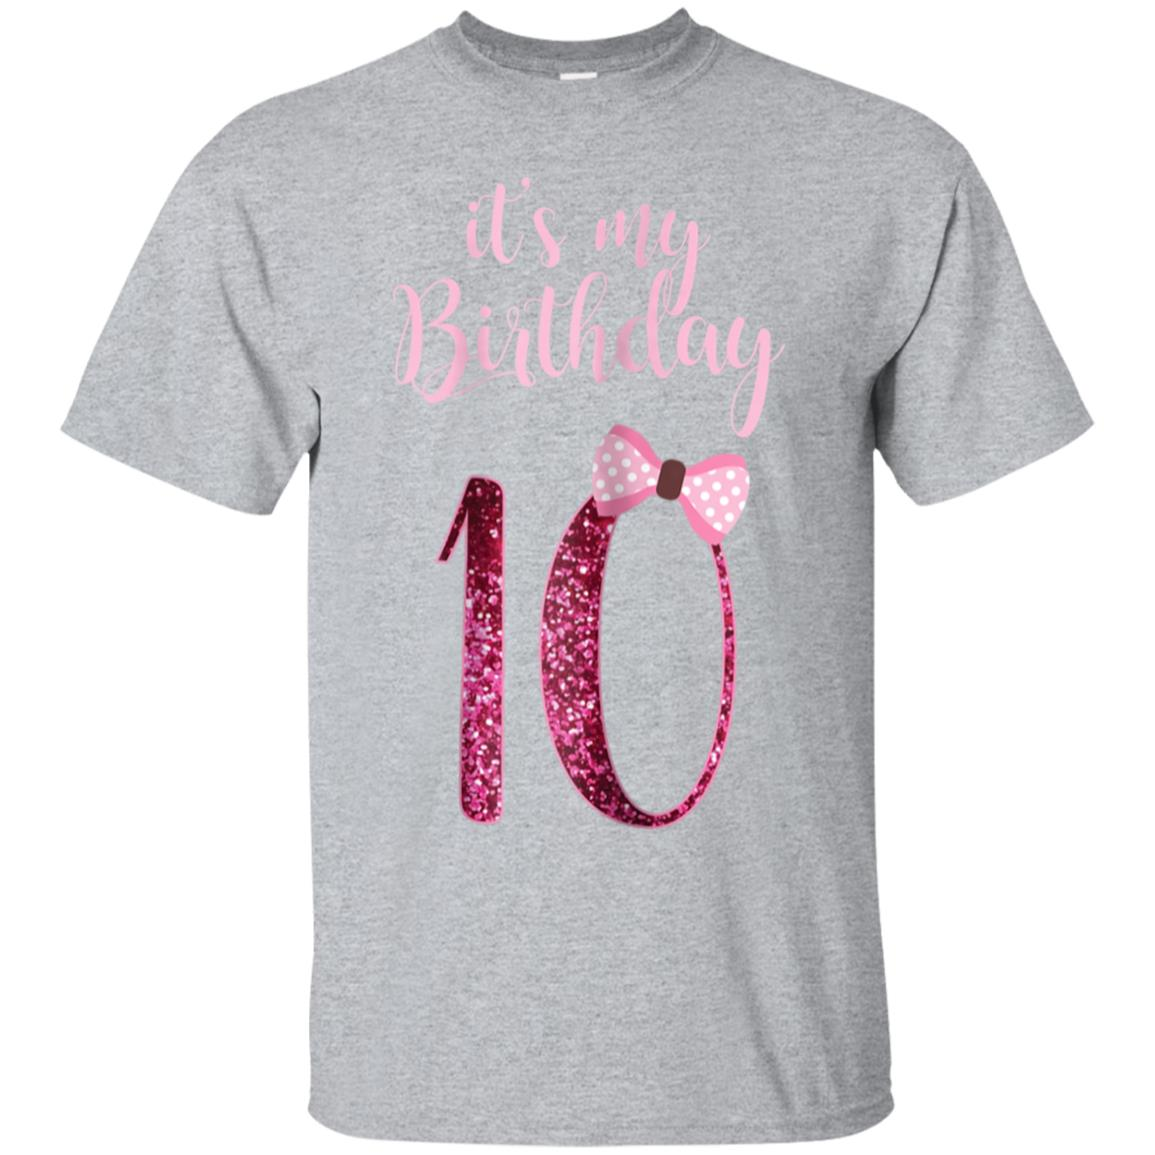 10th Birthday Girl Shirt - Cute 10 Years Old Bday Party Gift 99promocode